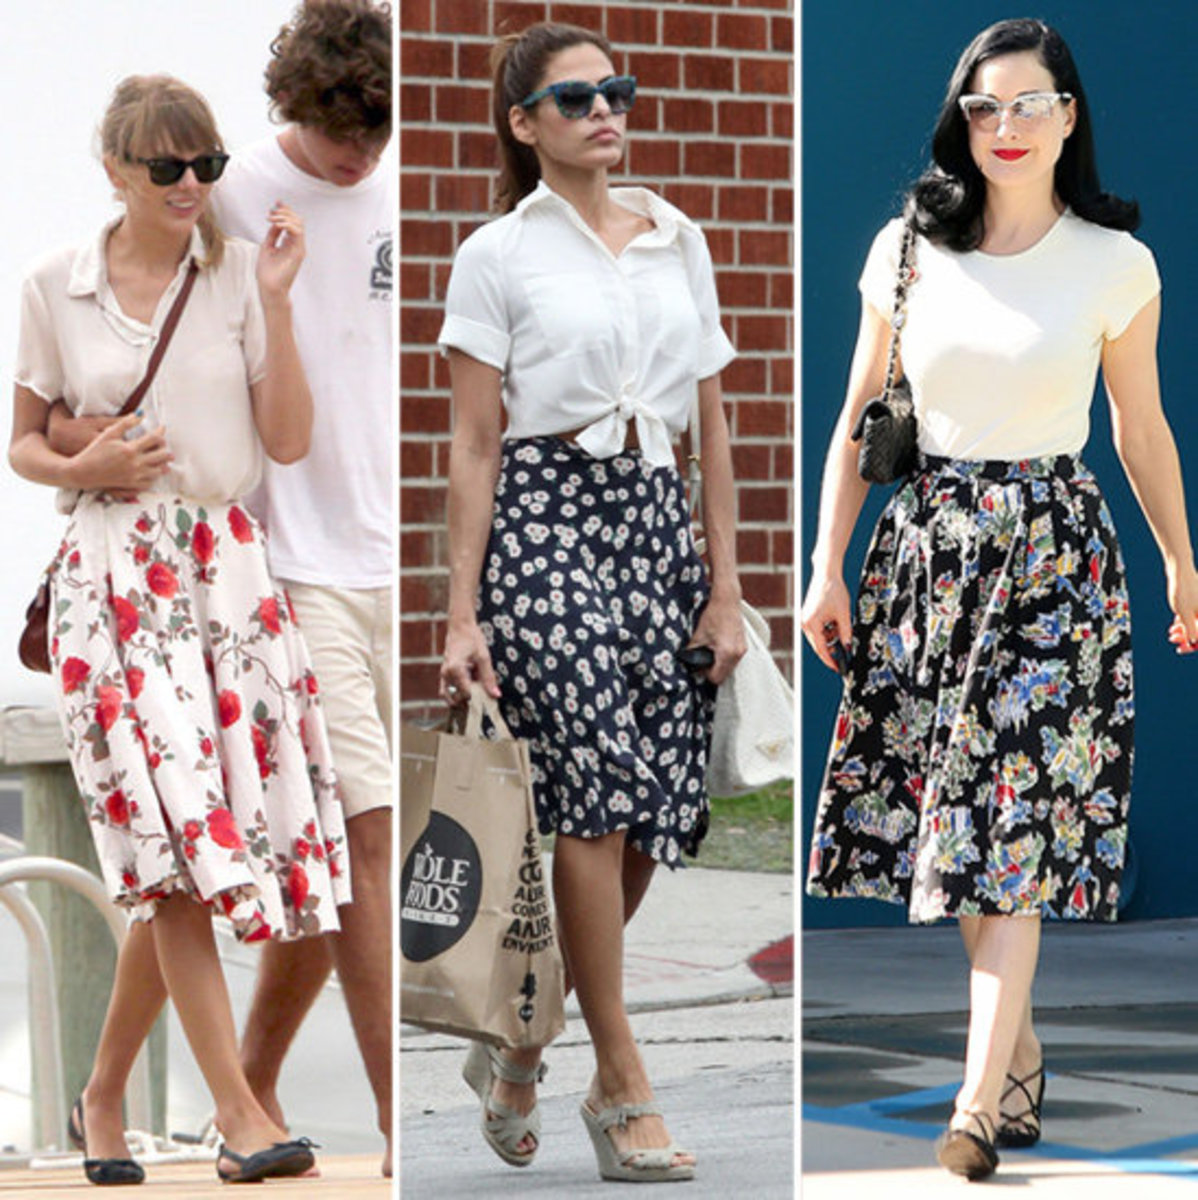 Taylor Swift sweet floral skirt and cute ballerinas.  Dita Von Teese looking great on a floral skirt and flat shoes.